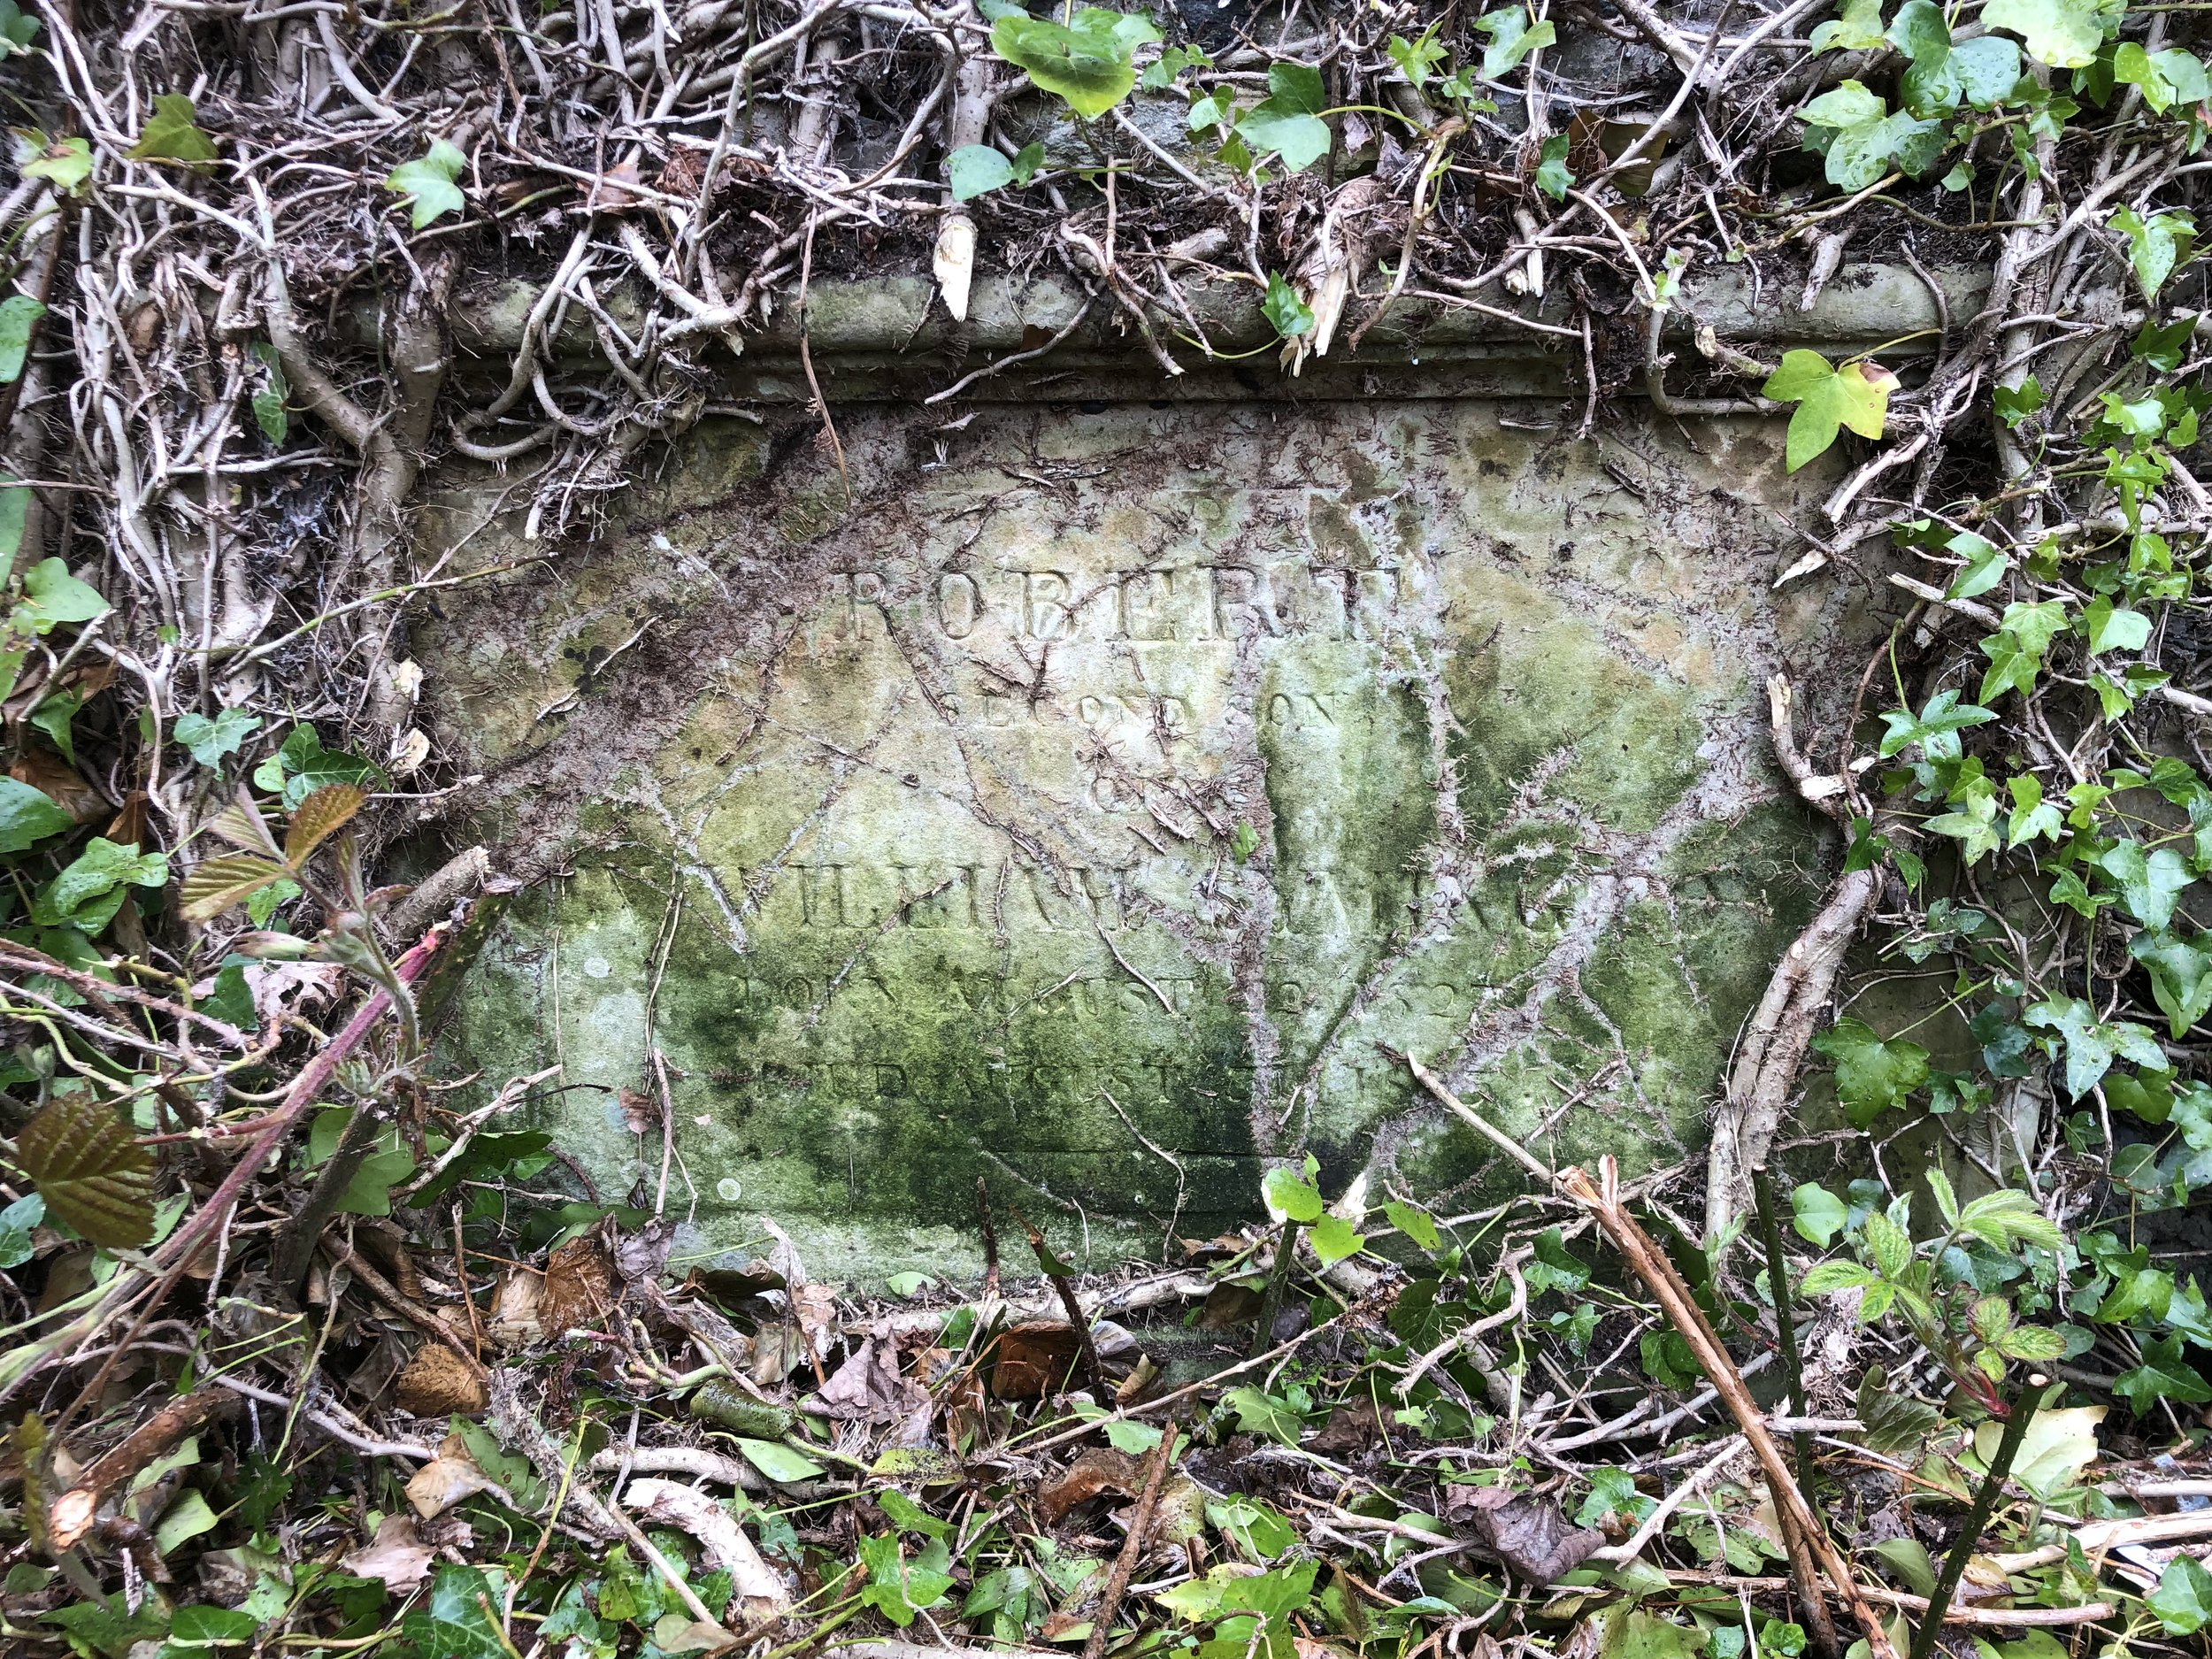 Robert's gravestone - built into the wall of the    Reformed Presbyterian graveyard